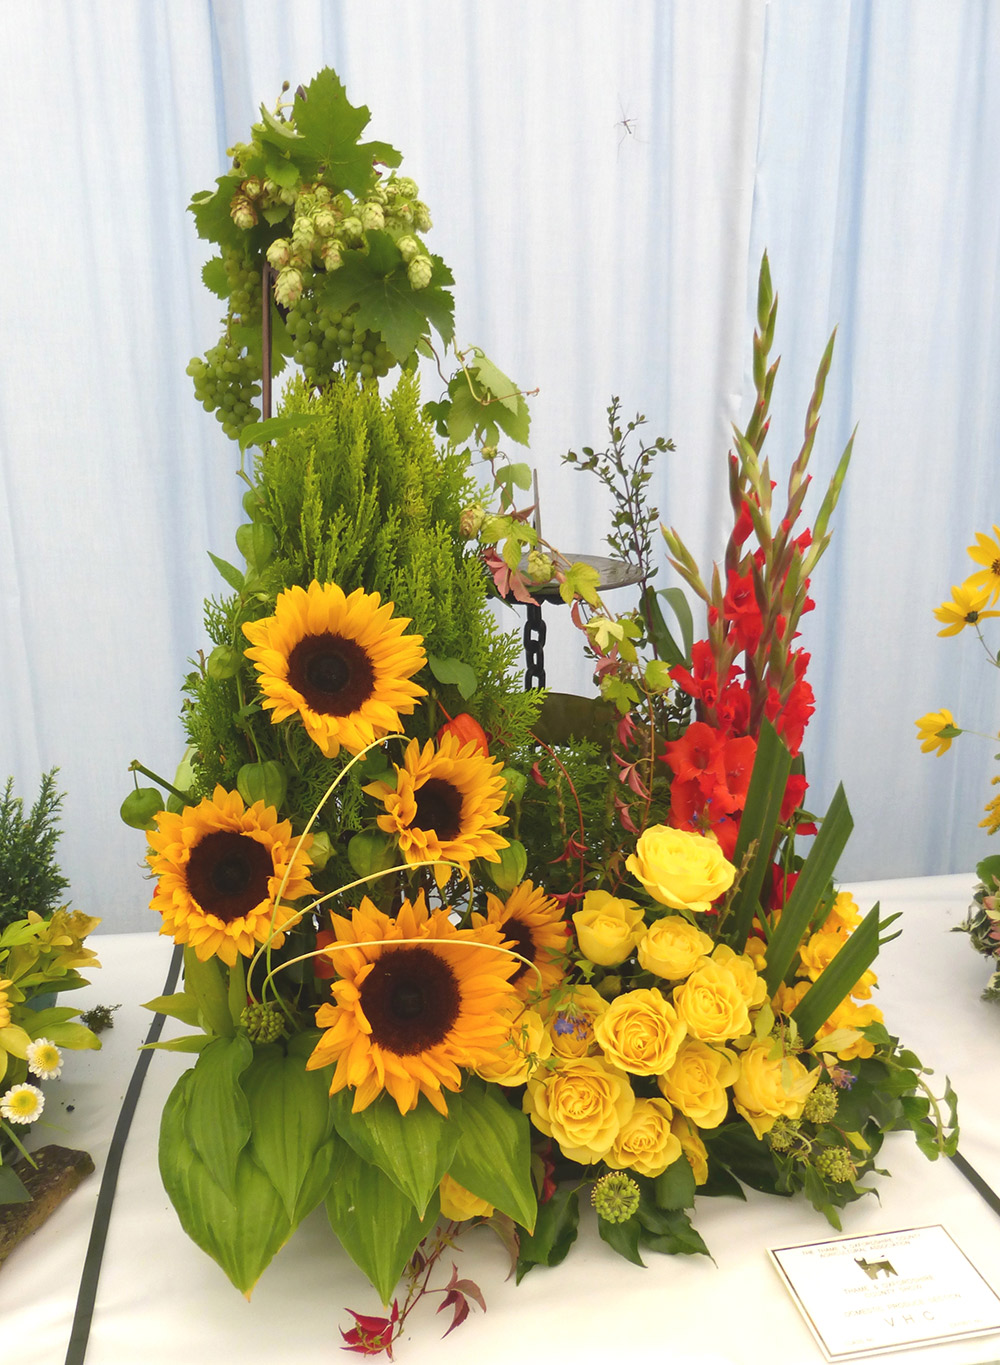 3. Diana Paul - Sunlight in the Garden (Thame Show 2014)